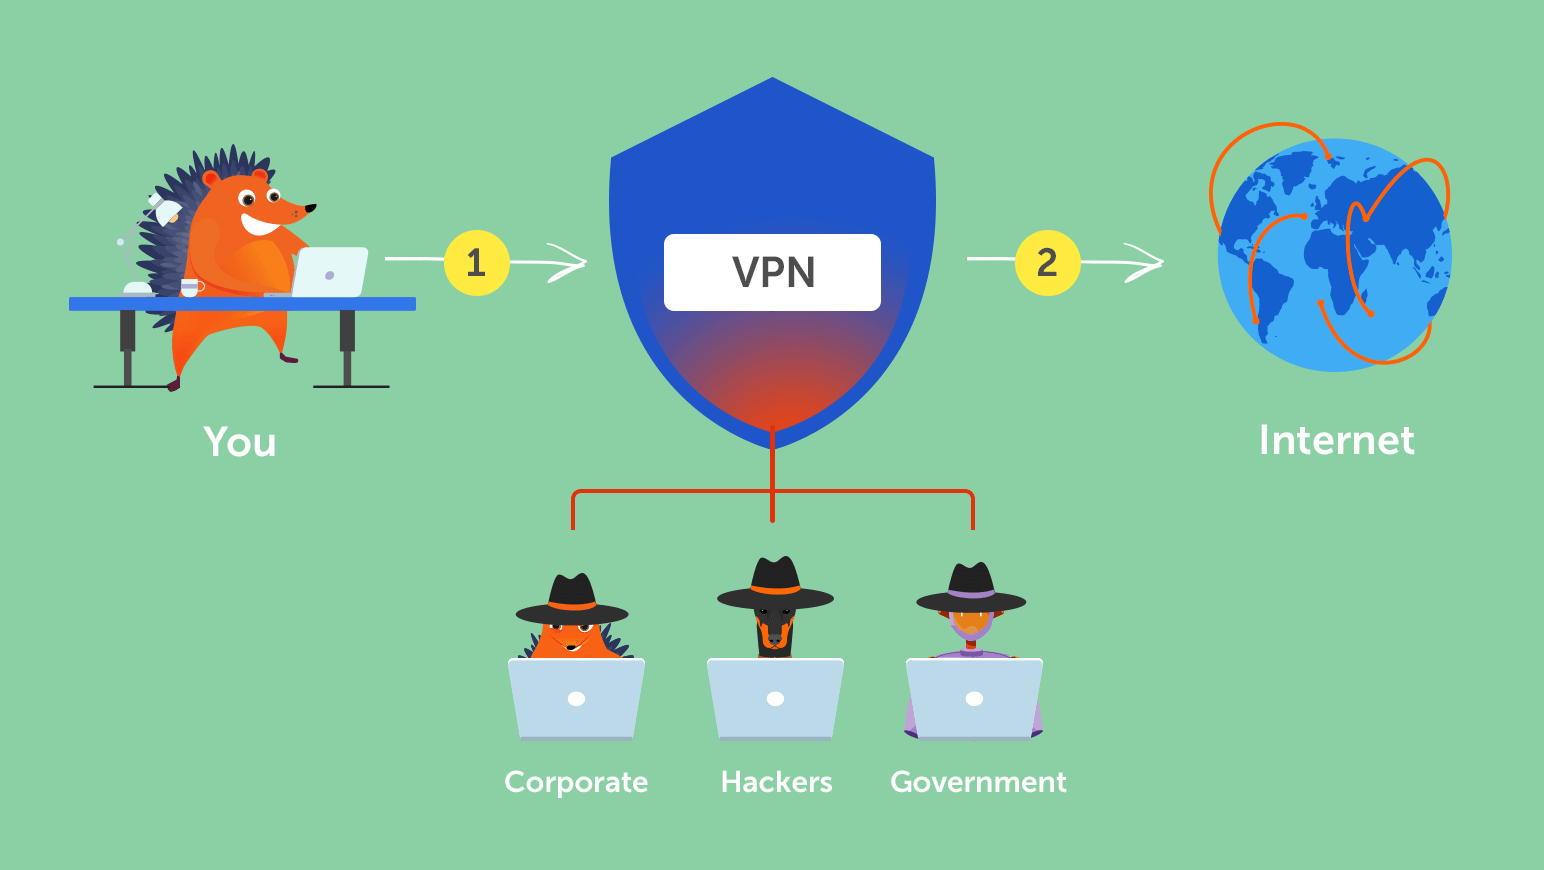 how-vpn-works Network Connection Diagram on sn74ls27, tong sheng vlcd6, 59sc5a, generator load bank, tankless ro system, hk42fz013, mini apprentice, isolation transformer,